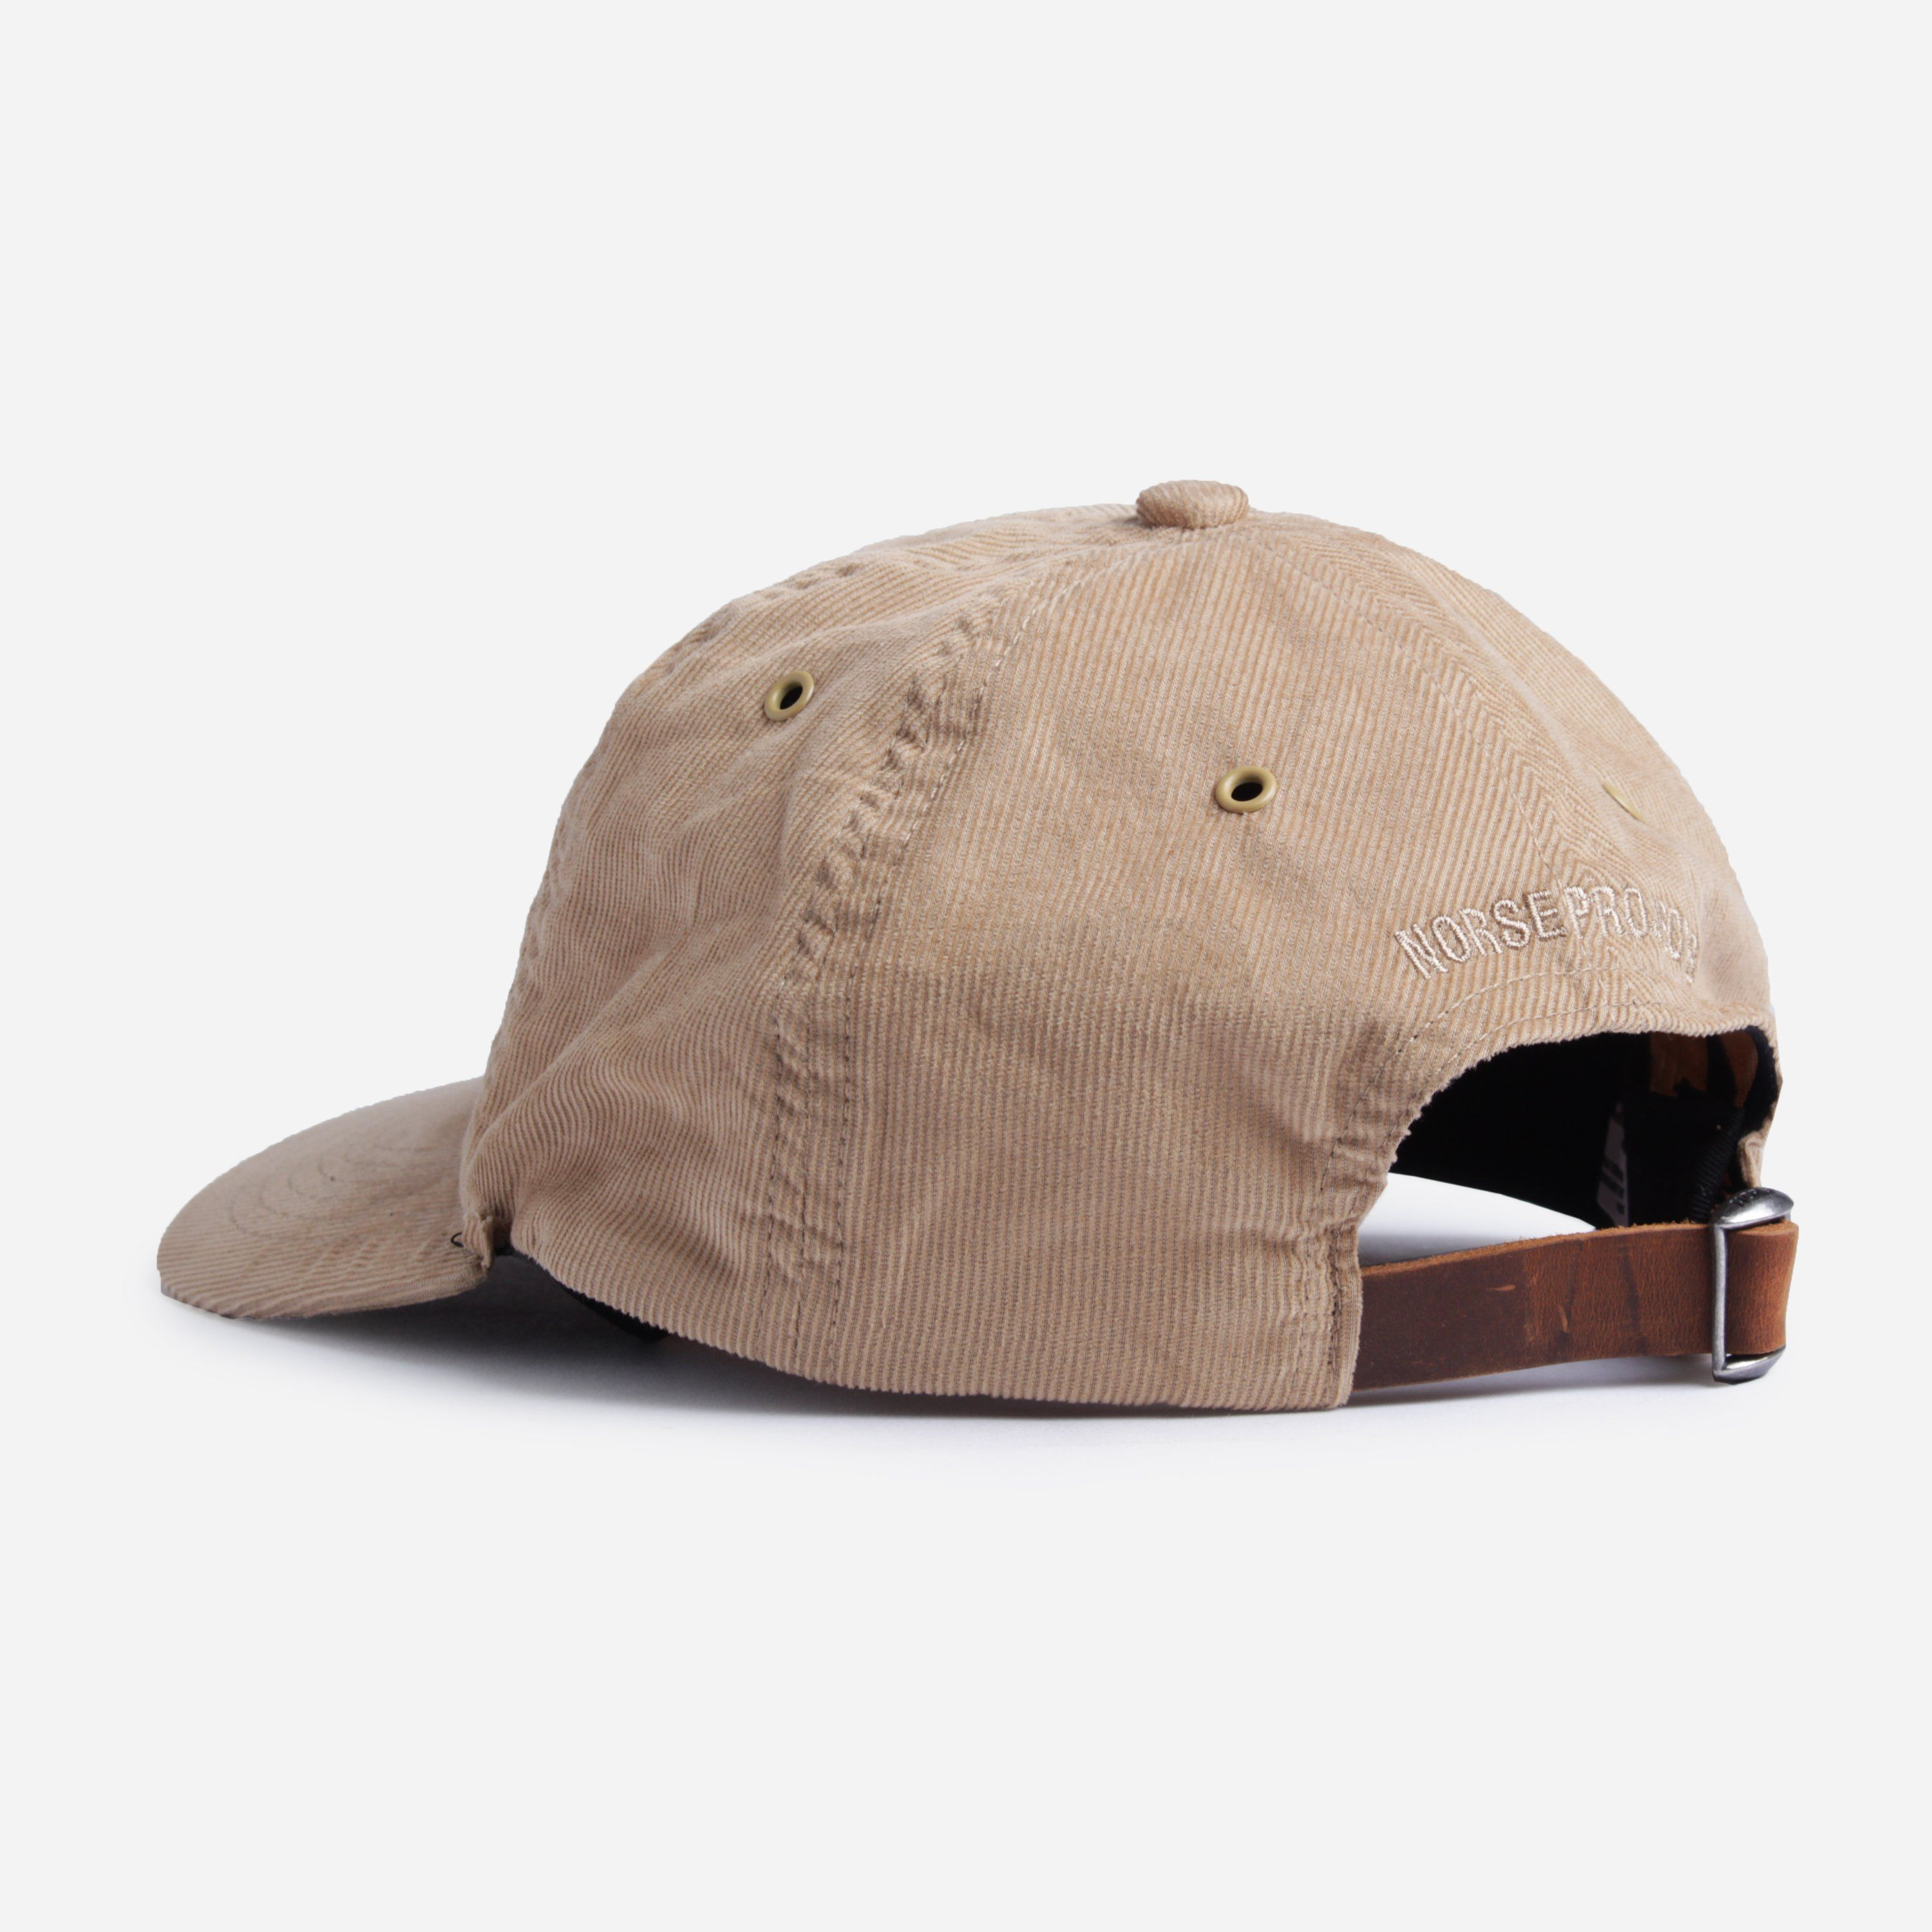 Norse Projects N80-0020 BABY CORDUROY SPORTS CAP